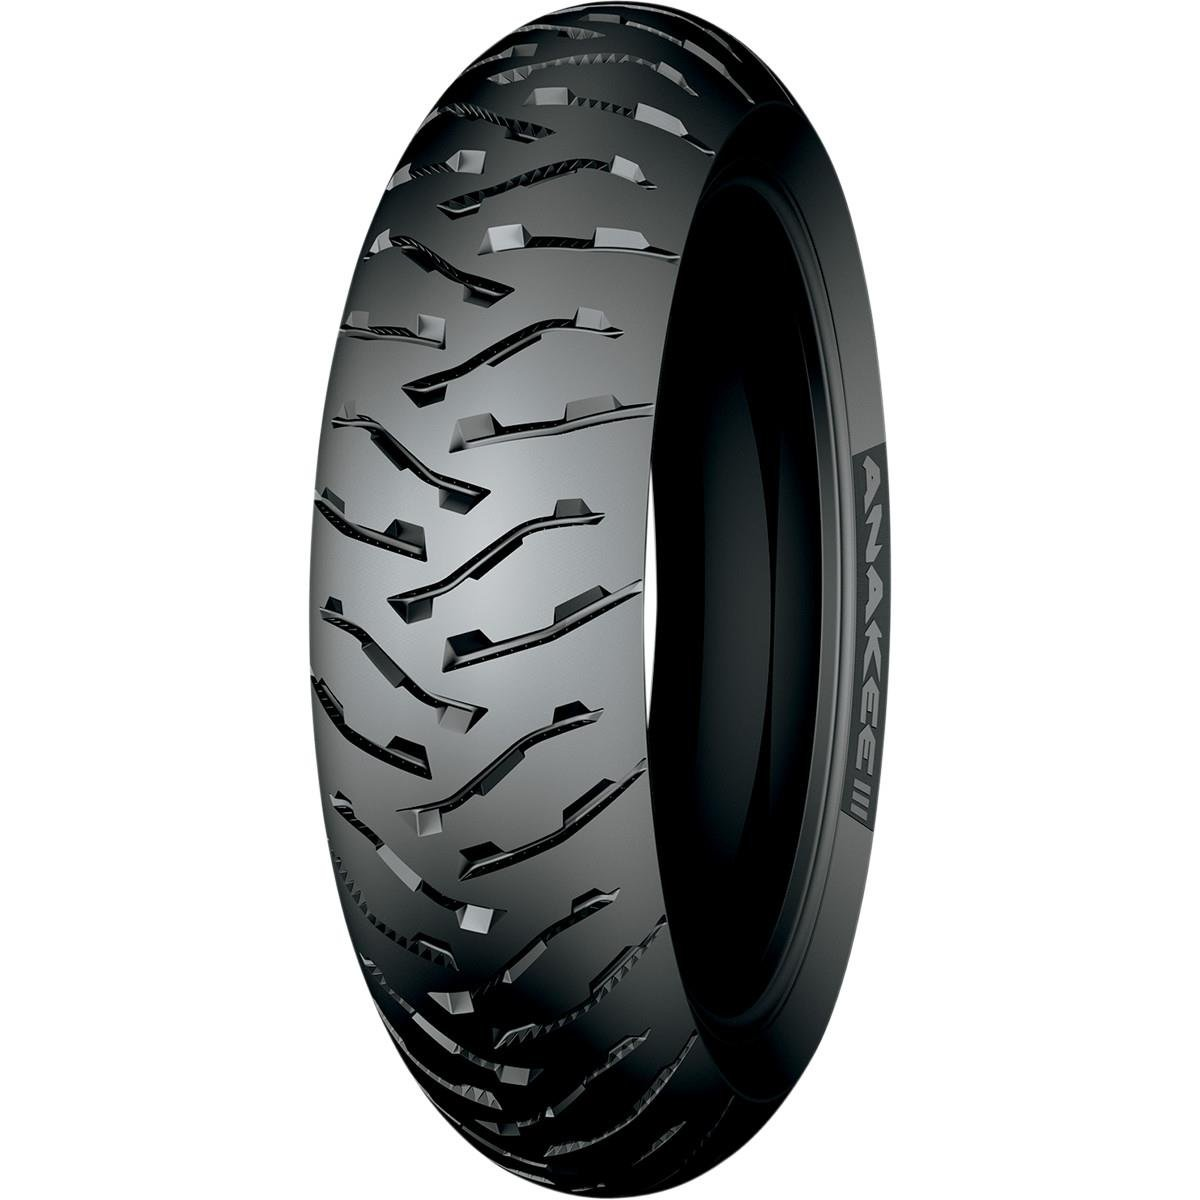 Michelin Anakee III Dual/Enduro Rear Motorcycle Radial Tire - 150/70R17 69V 4333045805